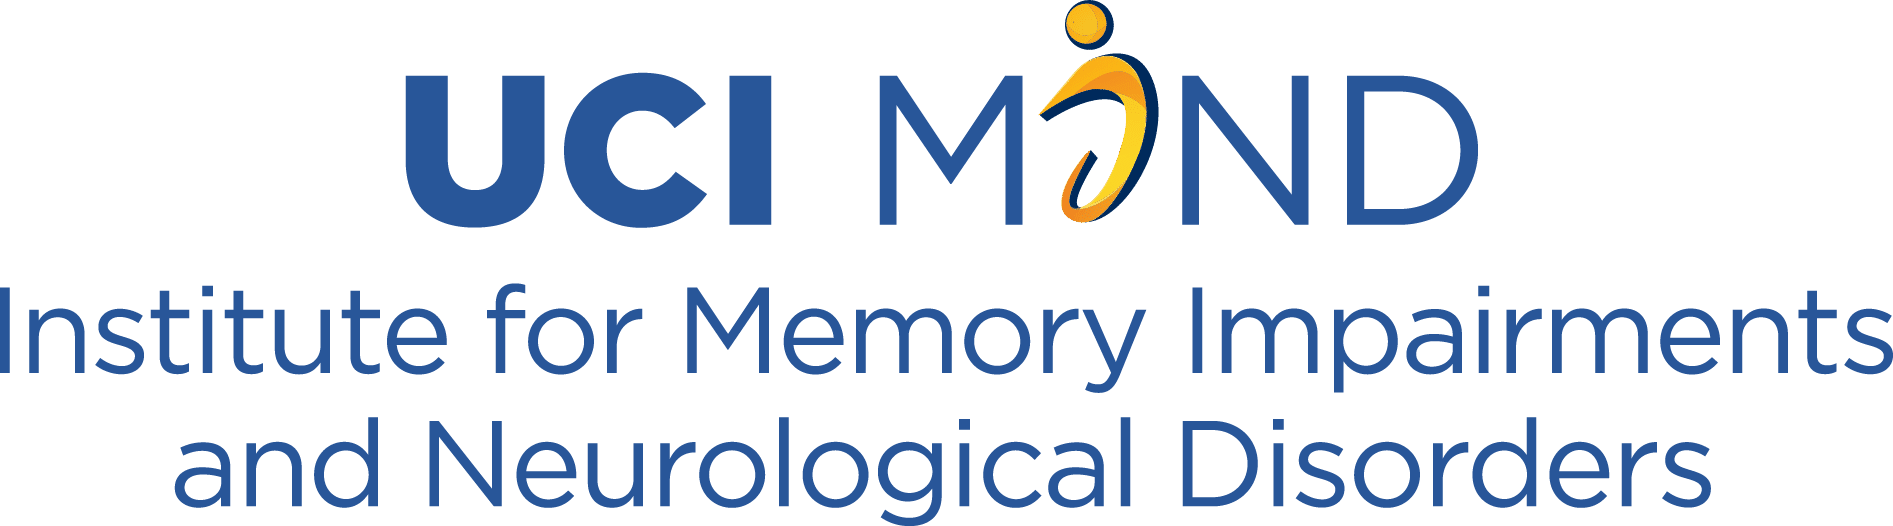 Logo for UCI Mind, the Institute for Memory Impairments and Neurological Disorders